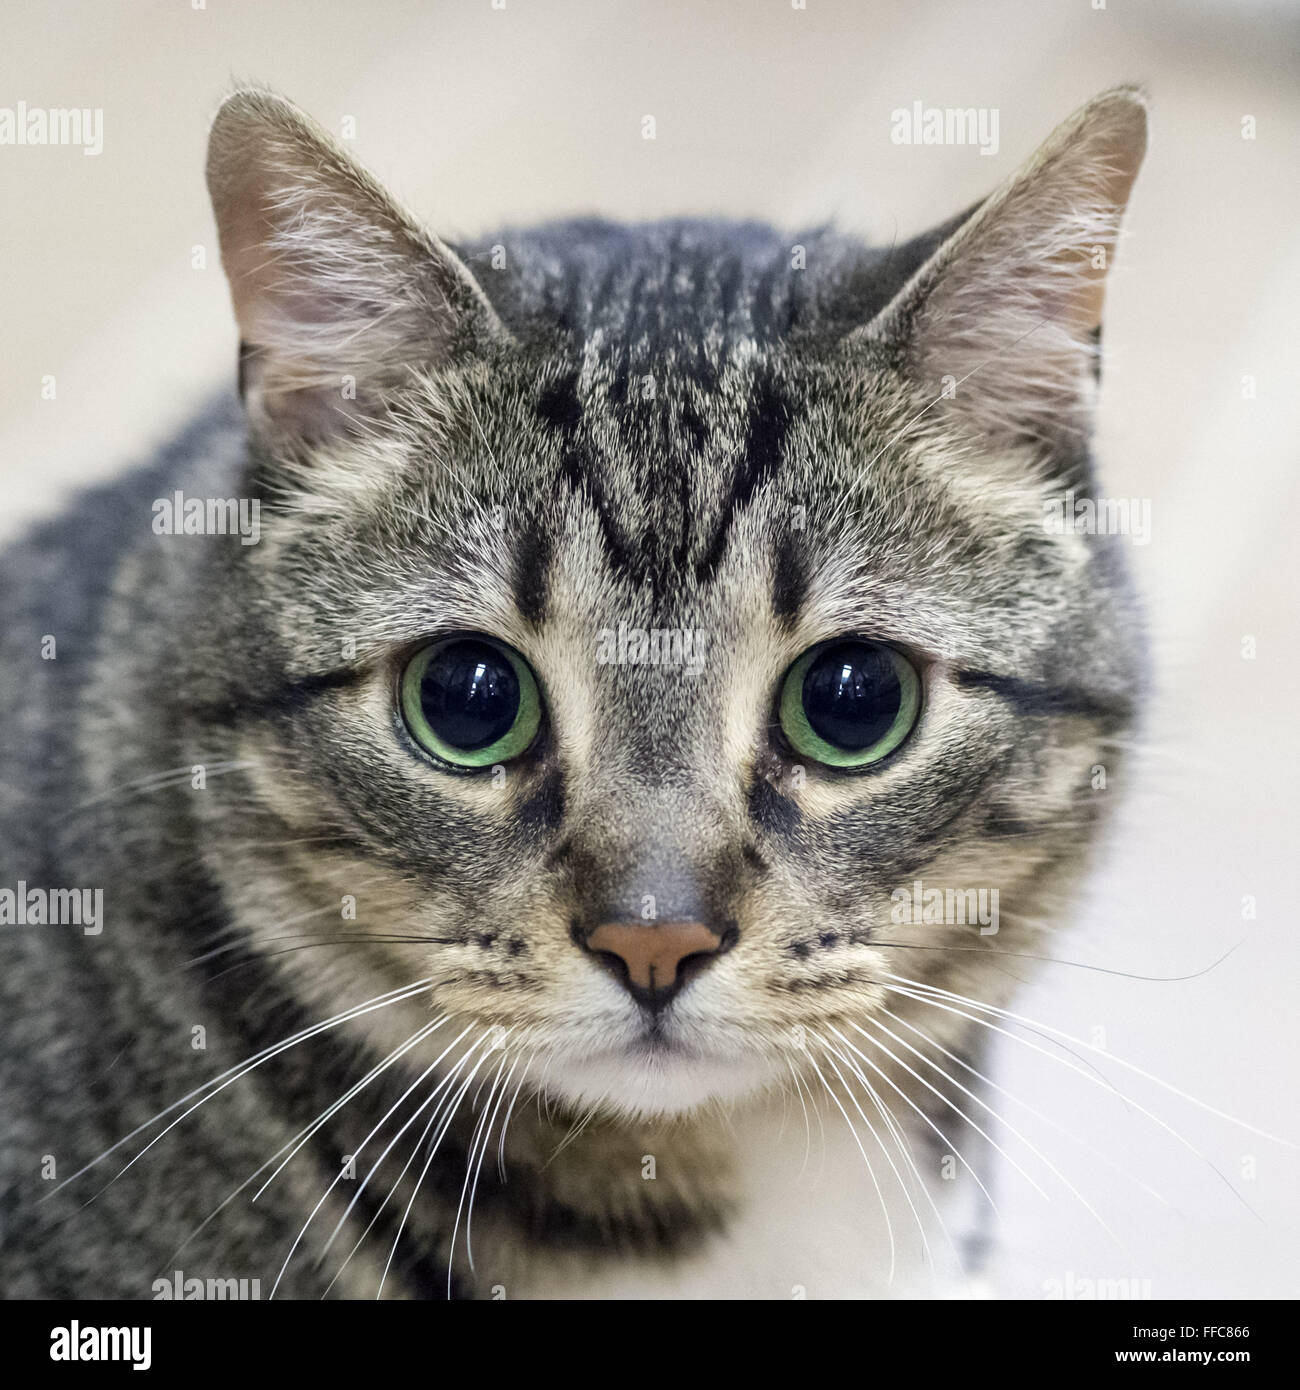 Wantagh, New York, USA. 7th Feb, 2016. Tabby cat ALEXANDER, the Mayor of Last Hope Rescue, is available for adoption - Stock Image